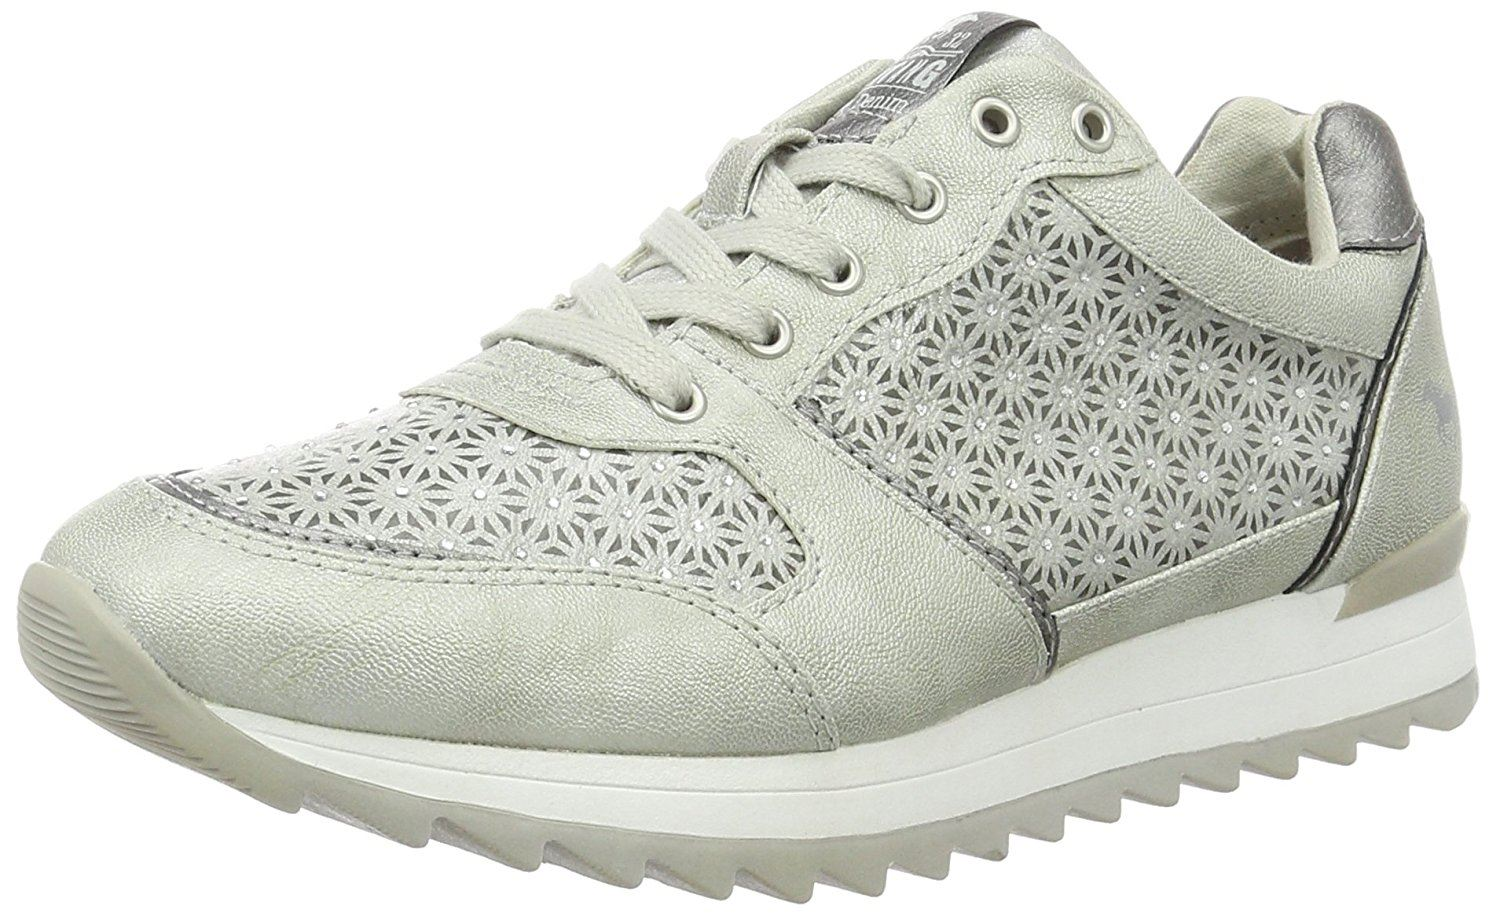 Womens 1241-301-21 Low-Top Sneakers Mustang